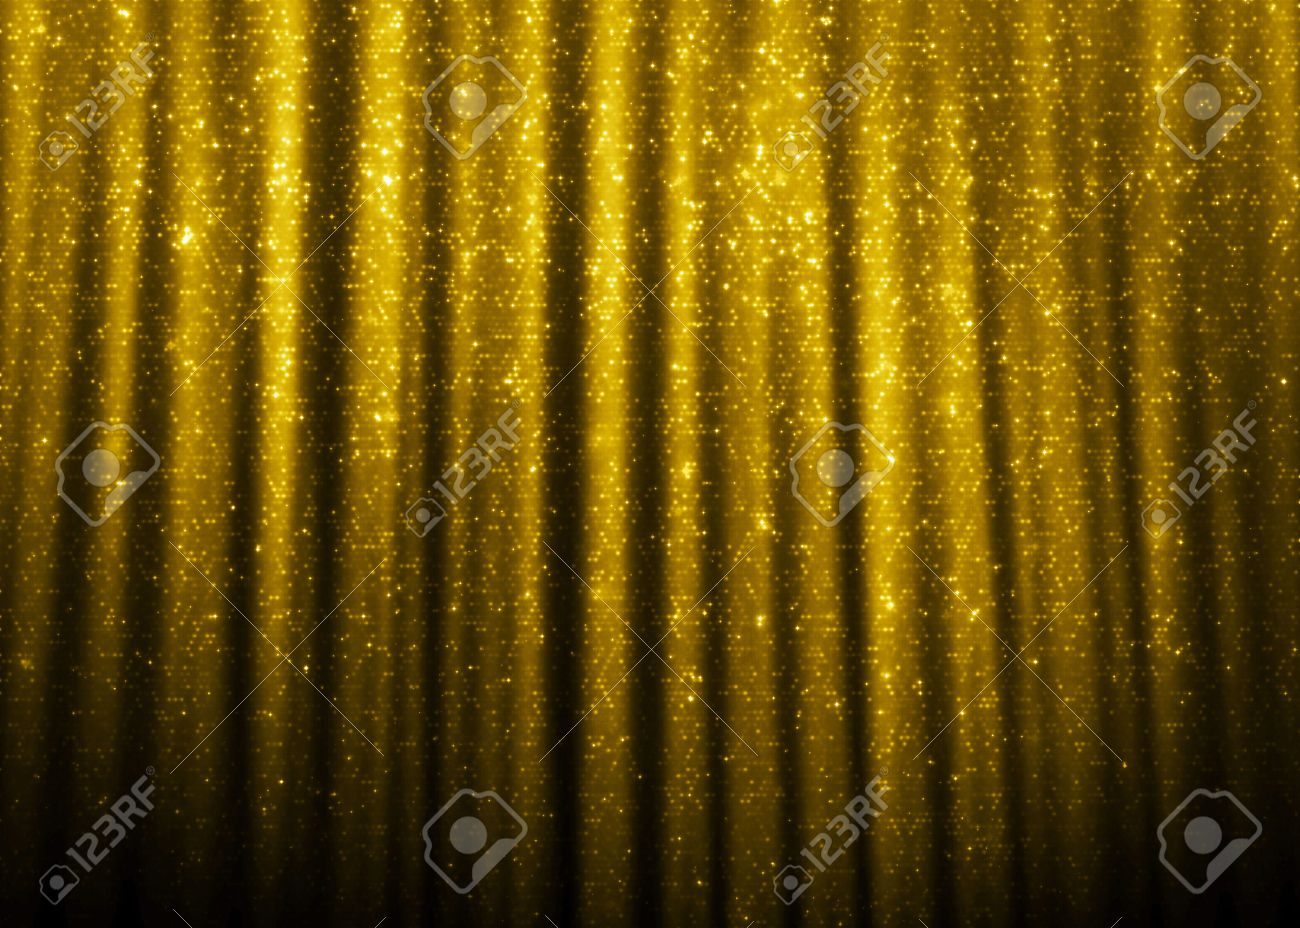 Curtains texture gold - Gold Sparkle Glitter Curtains Background Stock Photo 46953904